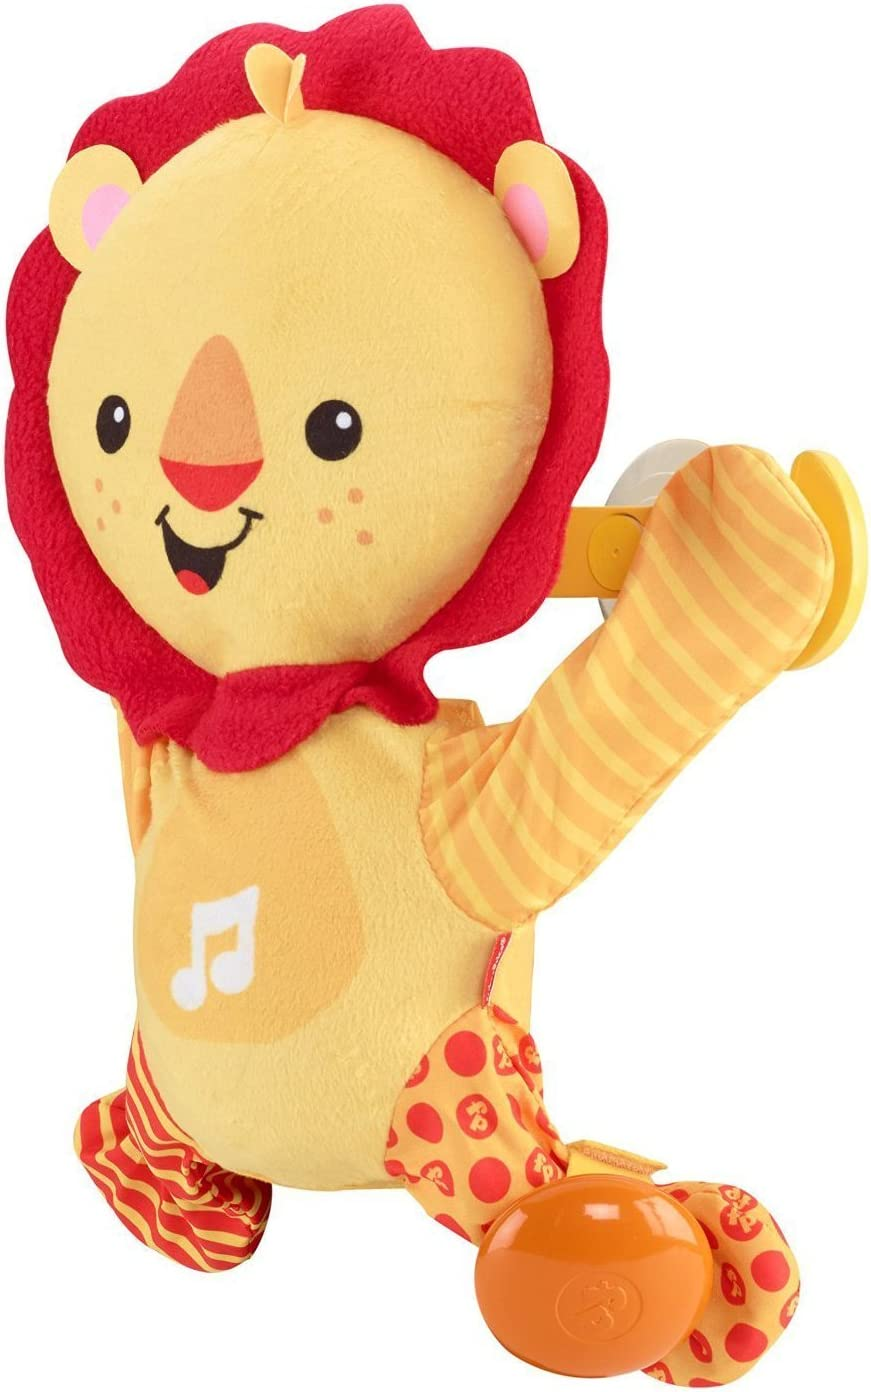 Amazon.com: Fisher-Price Roar 'n Ride Lion: Toys & Games